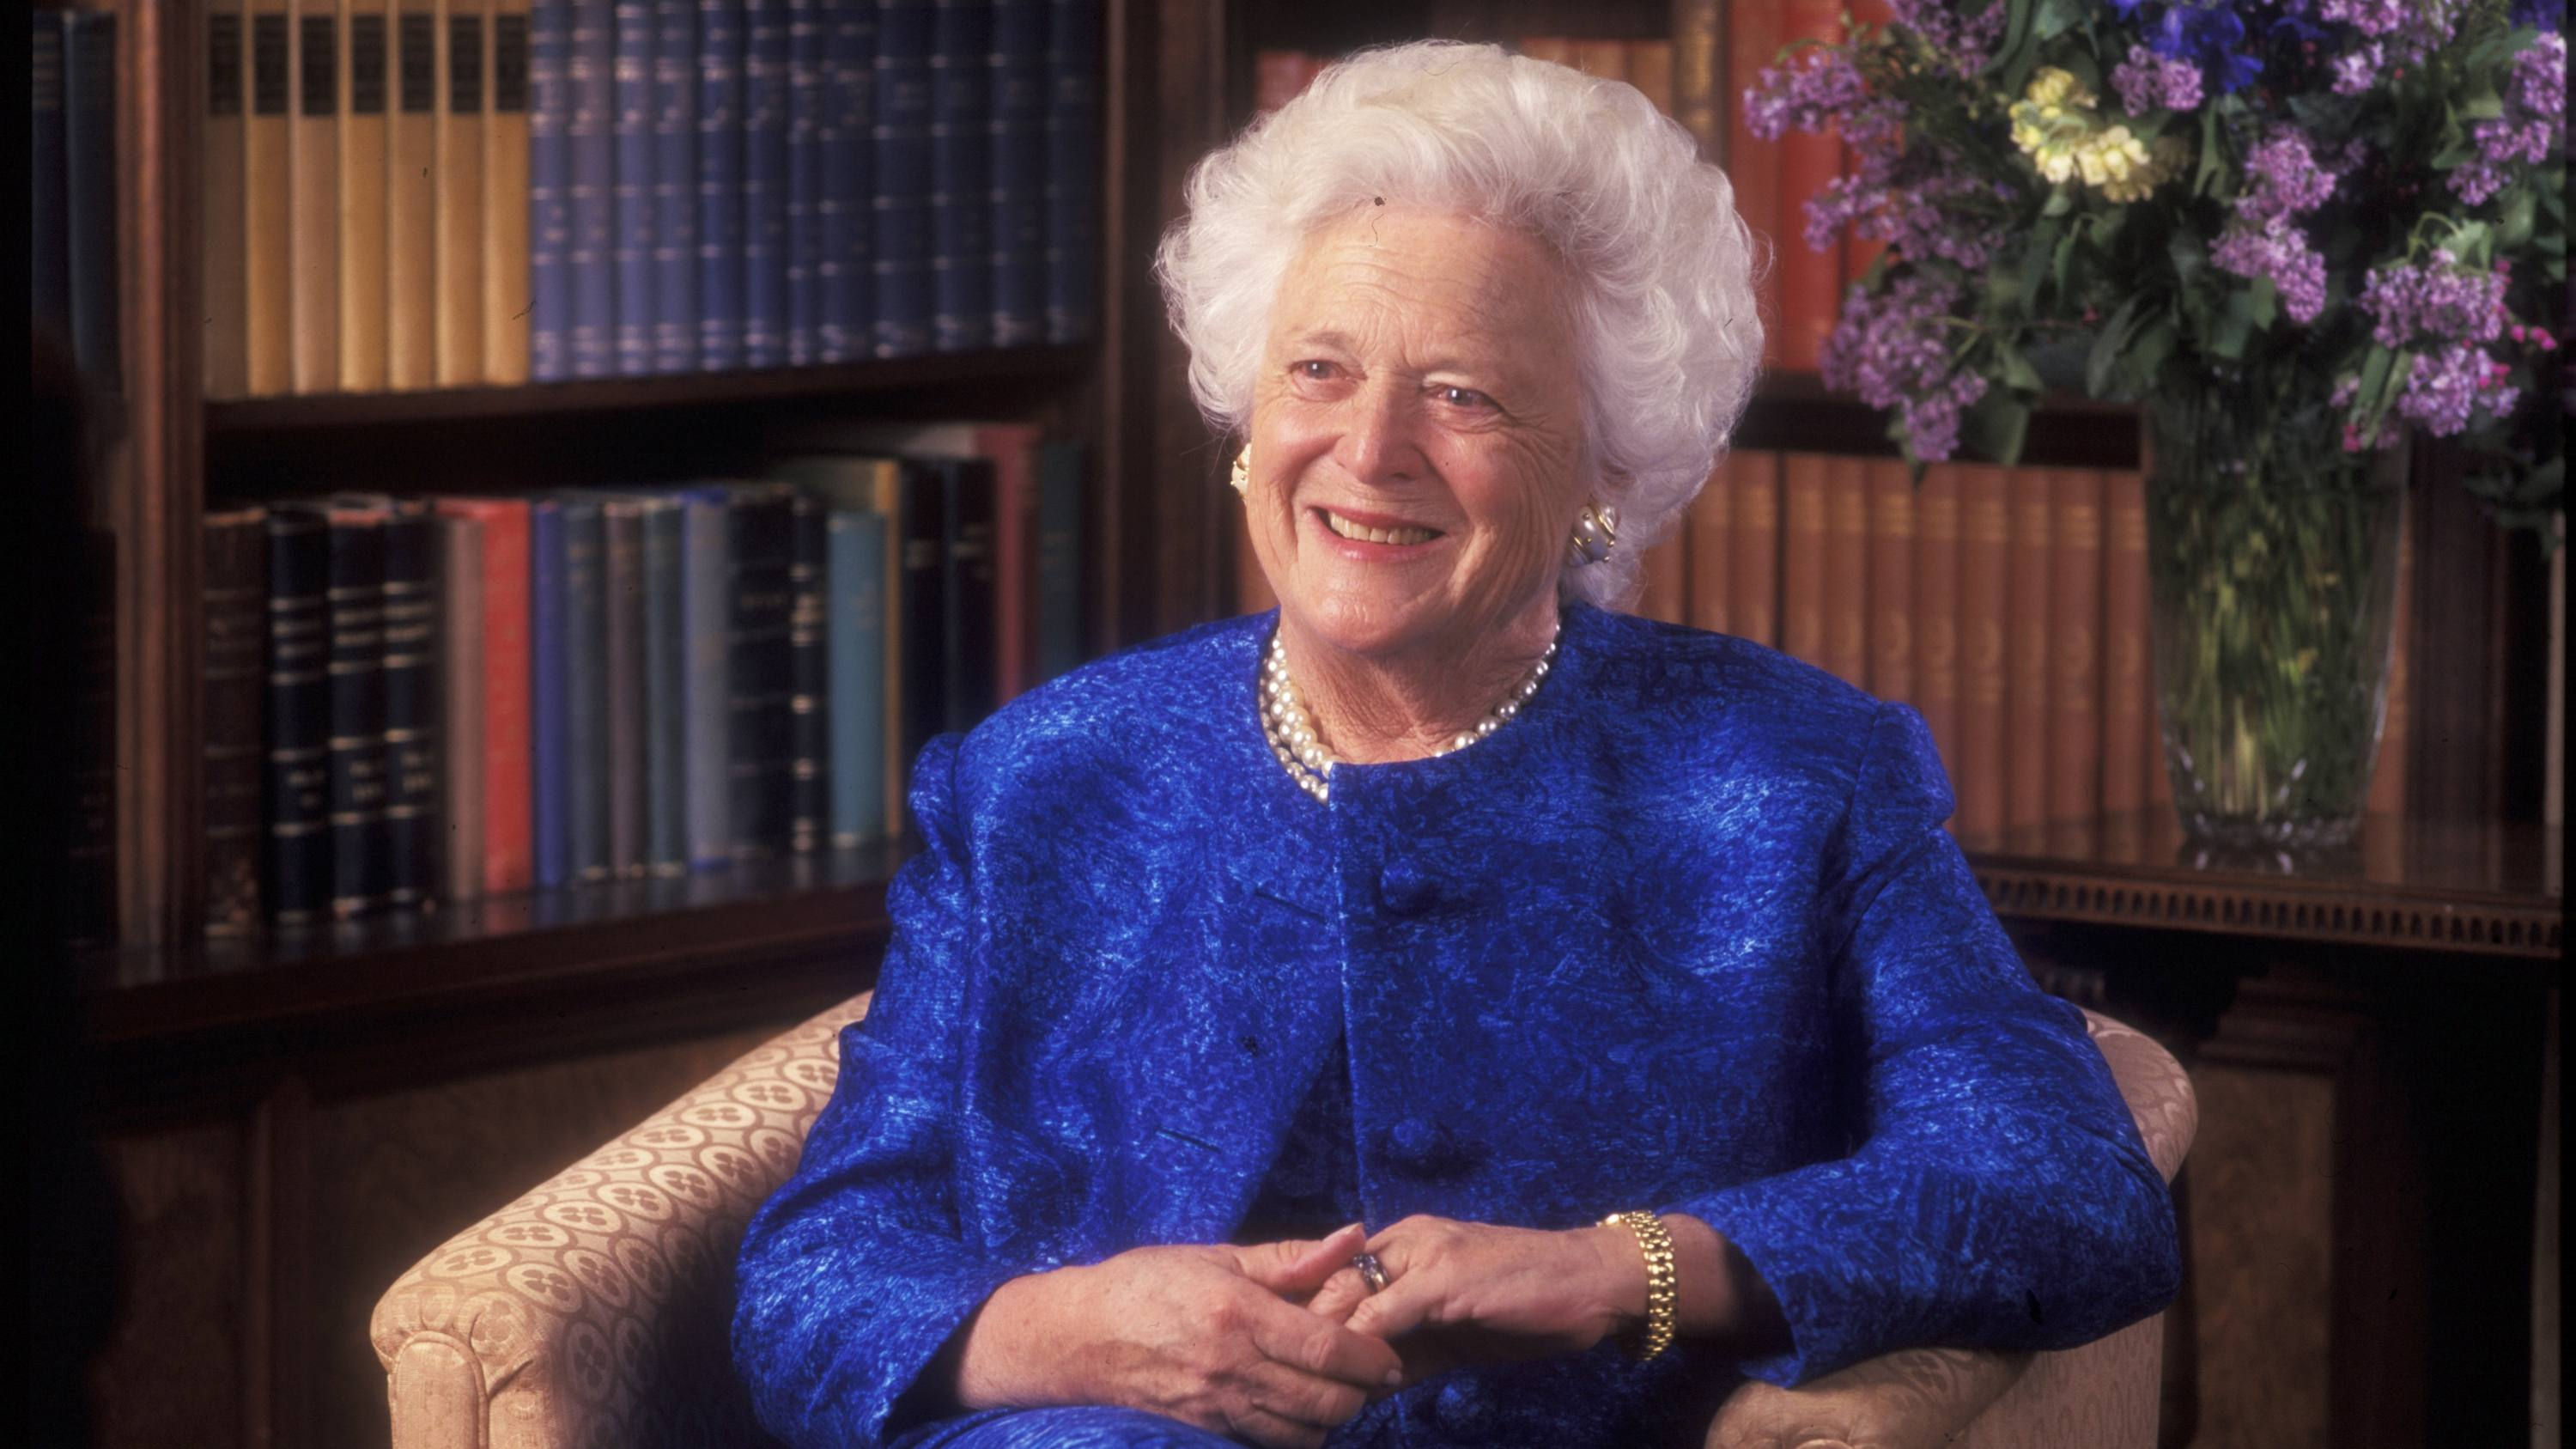 former First Lady Barbara Bush in a bright blue dress suit, sitting a library chair and smiling